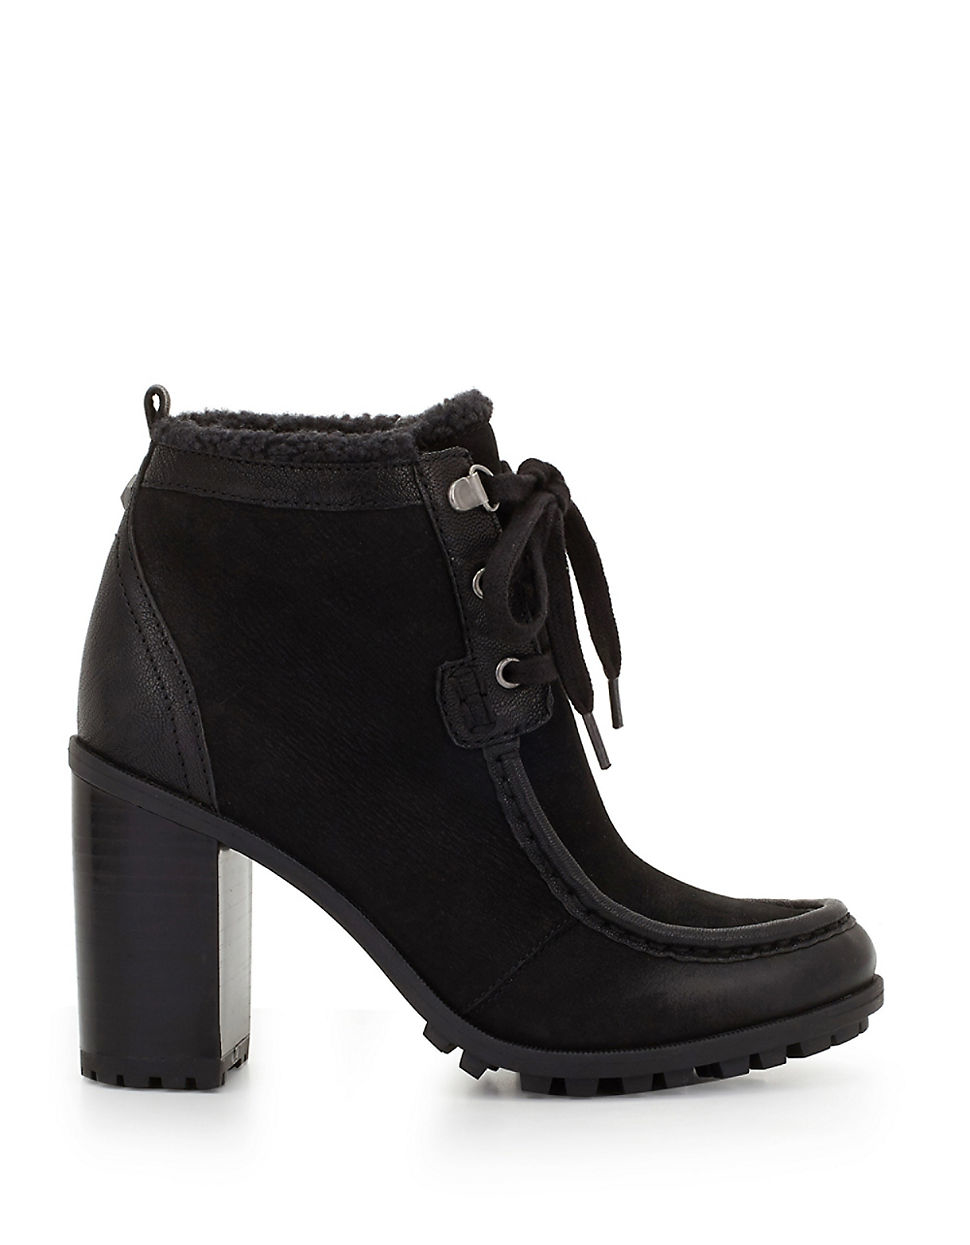 50a240d558e482 Lyst - Sam Edelman Madge Sherpa-lined Ankle Boots in Black